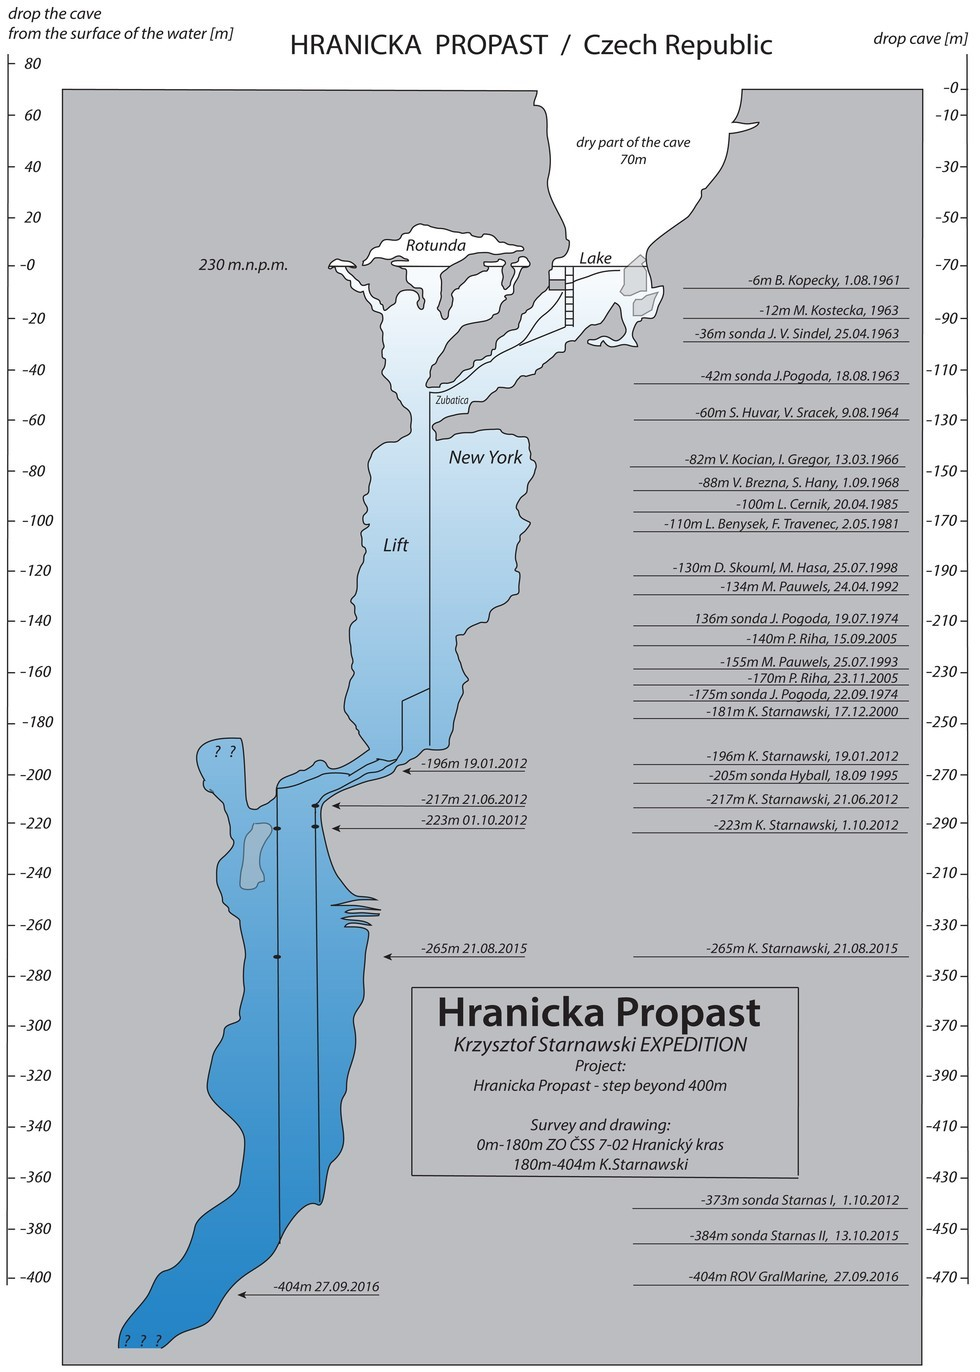 Cross-section map of the world's deepest underwater cave in Hranice Abyss (Czechia)